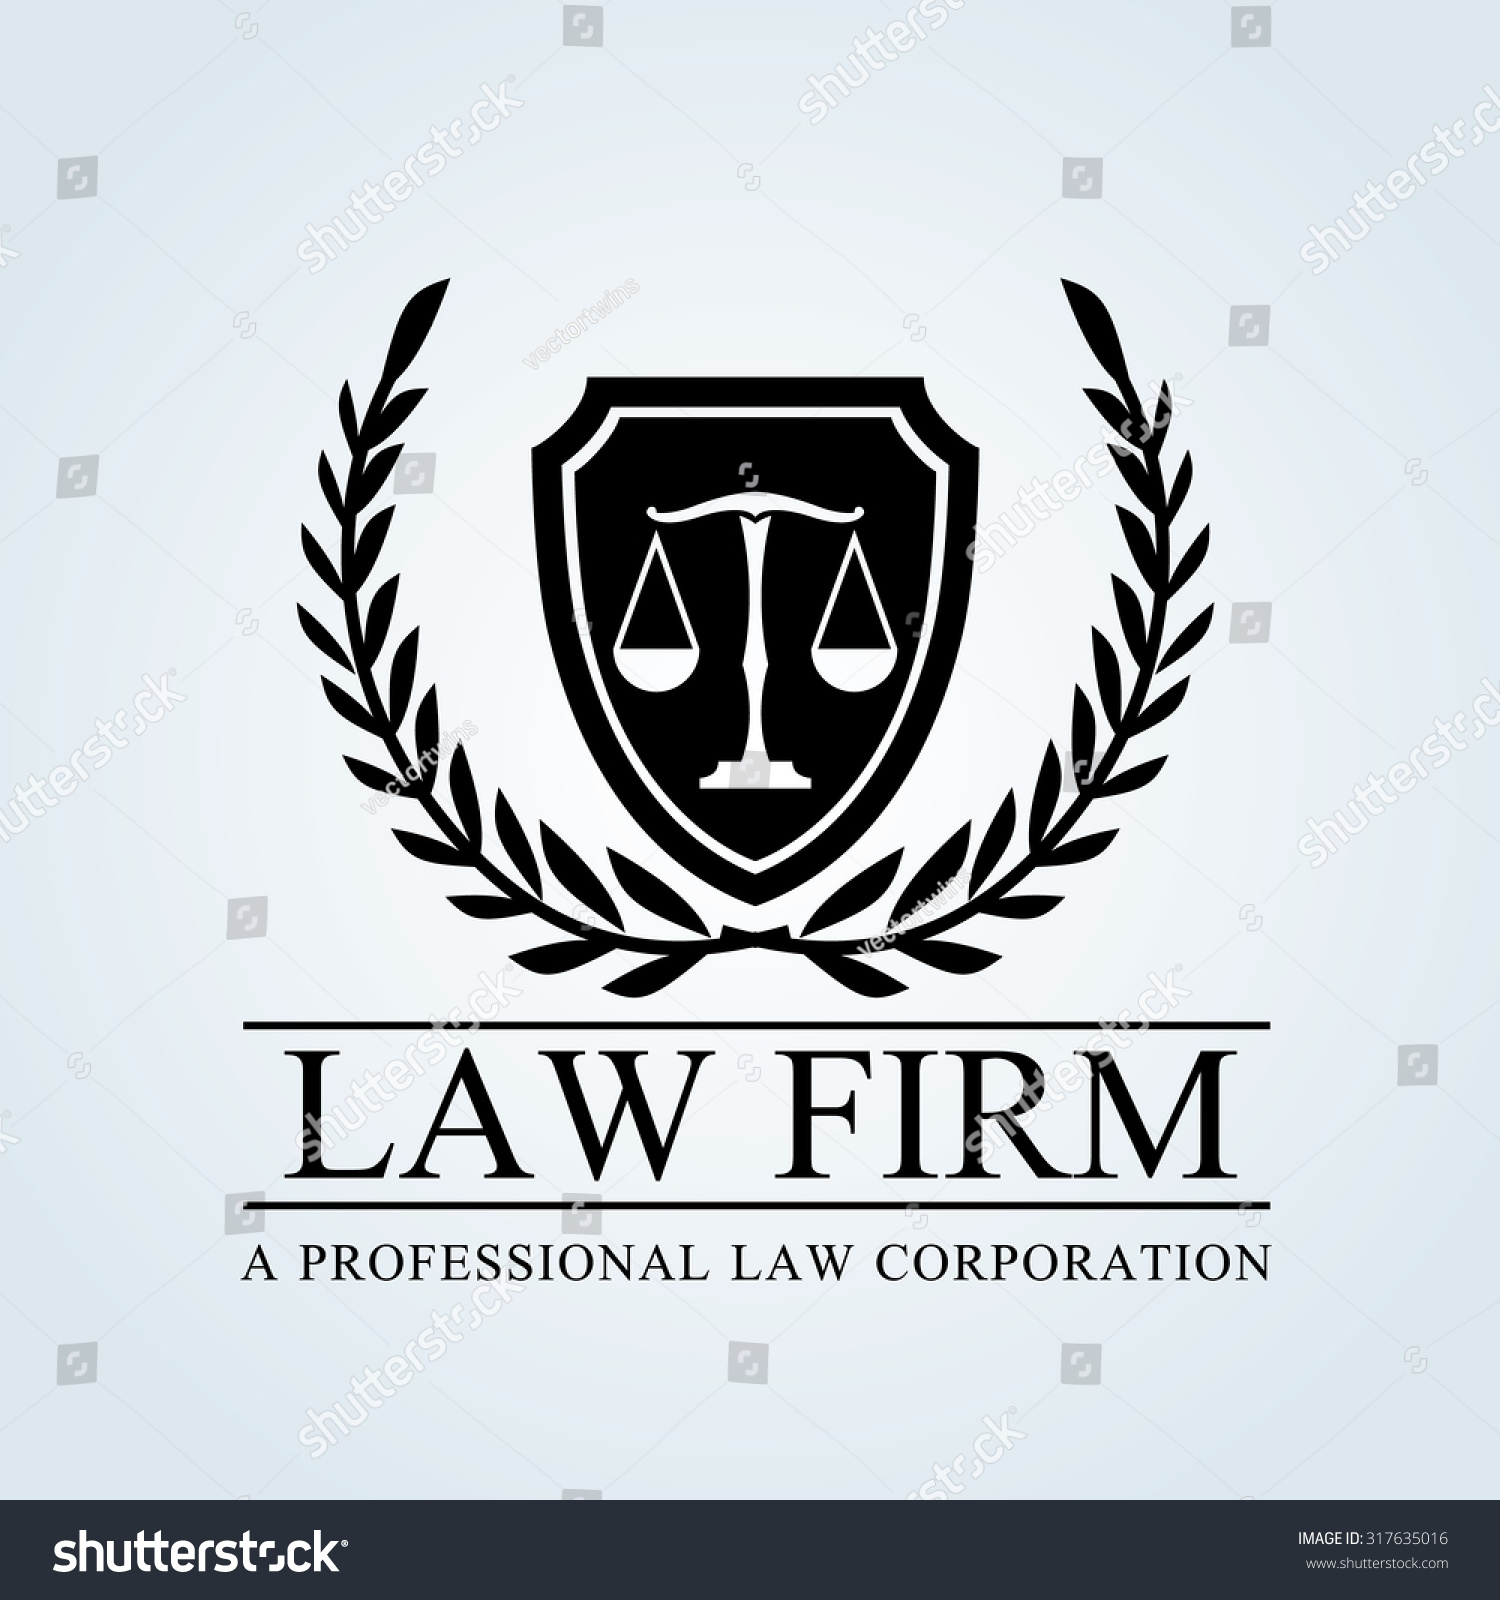 lawyer vector - photo #34